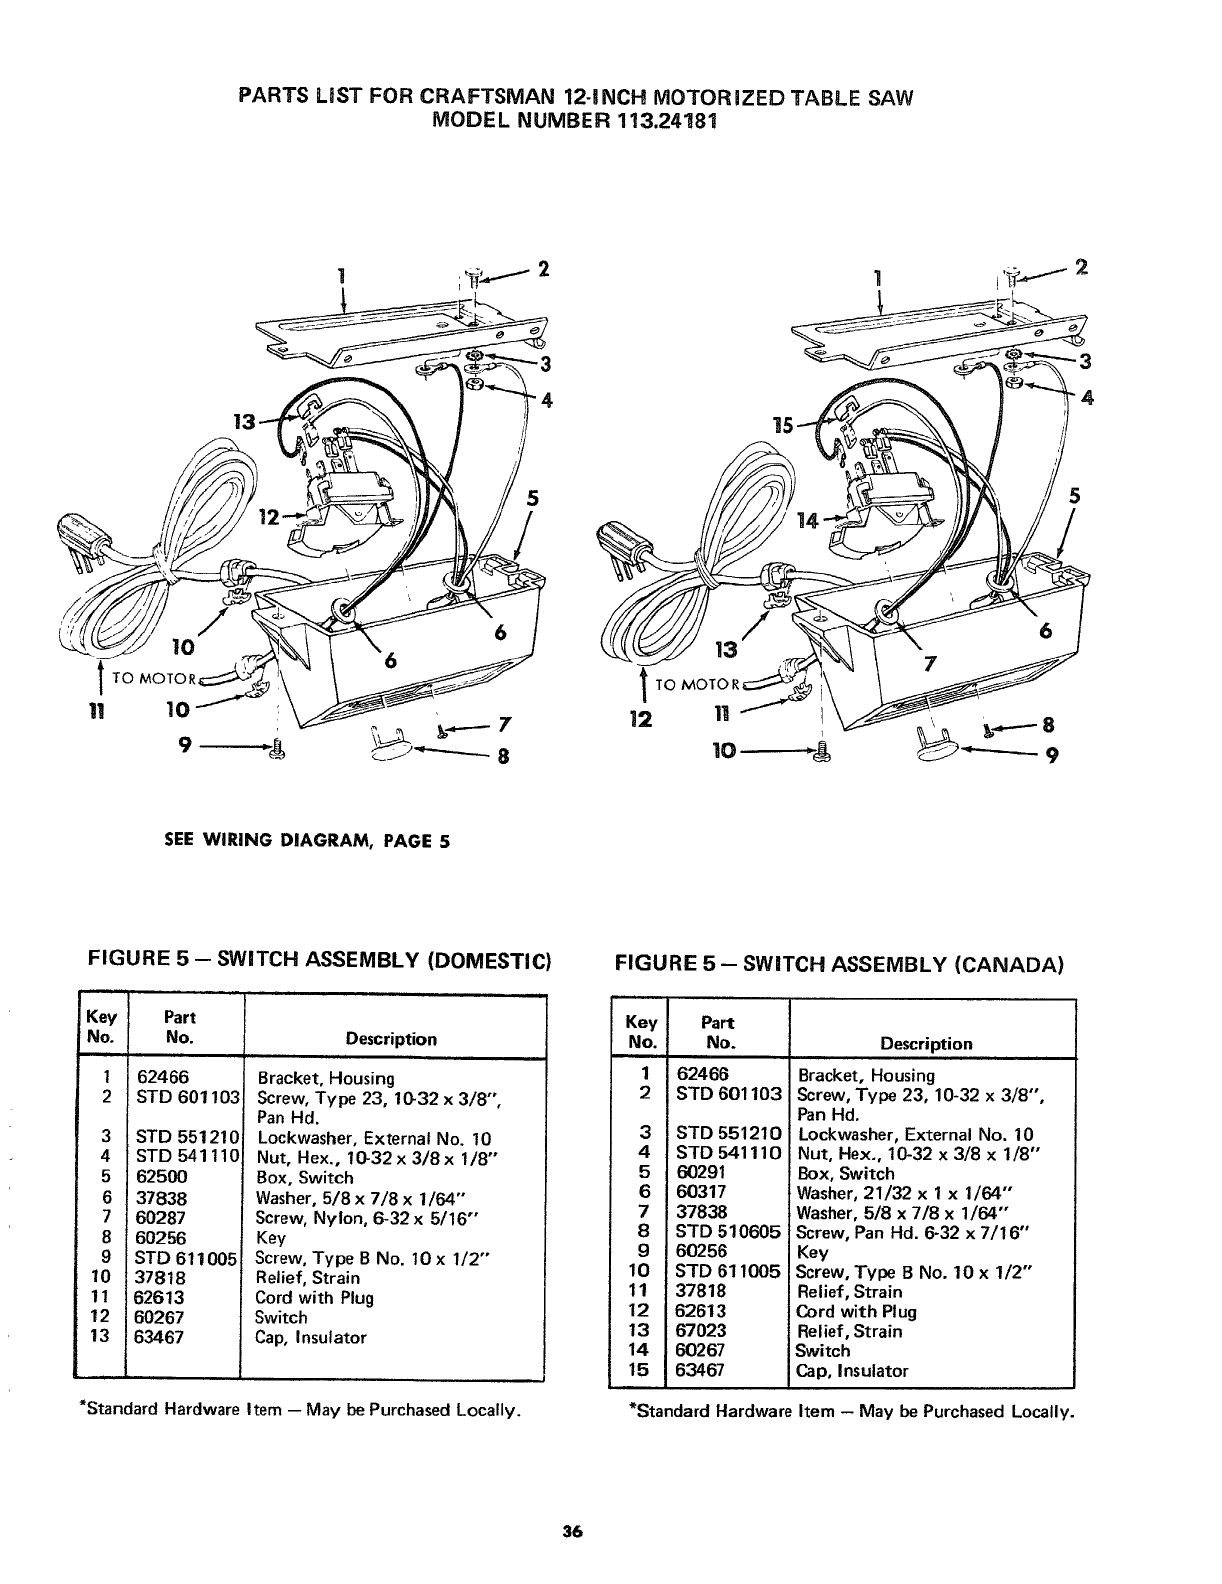 Dewalt dw745 parts list and diagram type 1 ereplacementparts table saw motor wire diagram wiring diagram greentooth Gallery